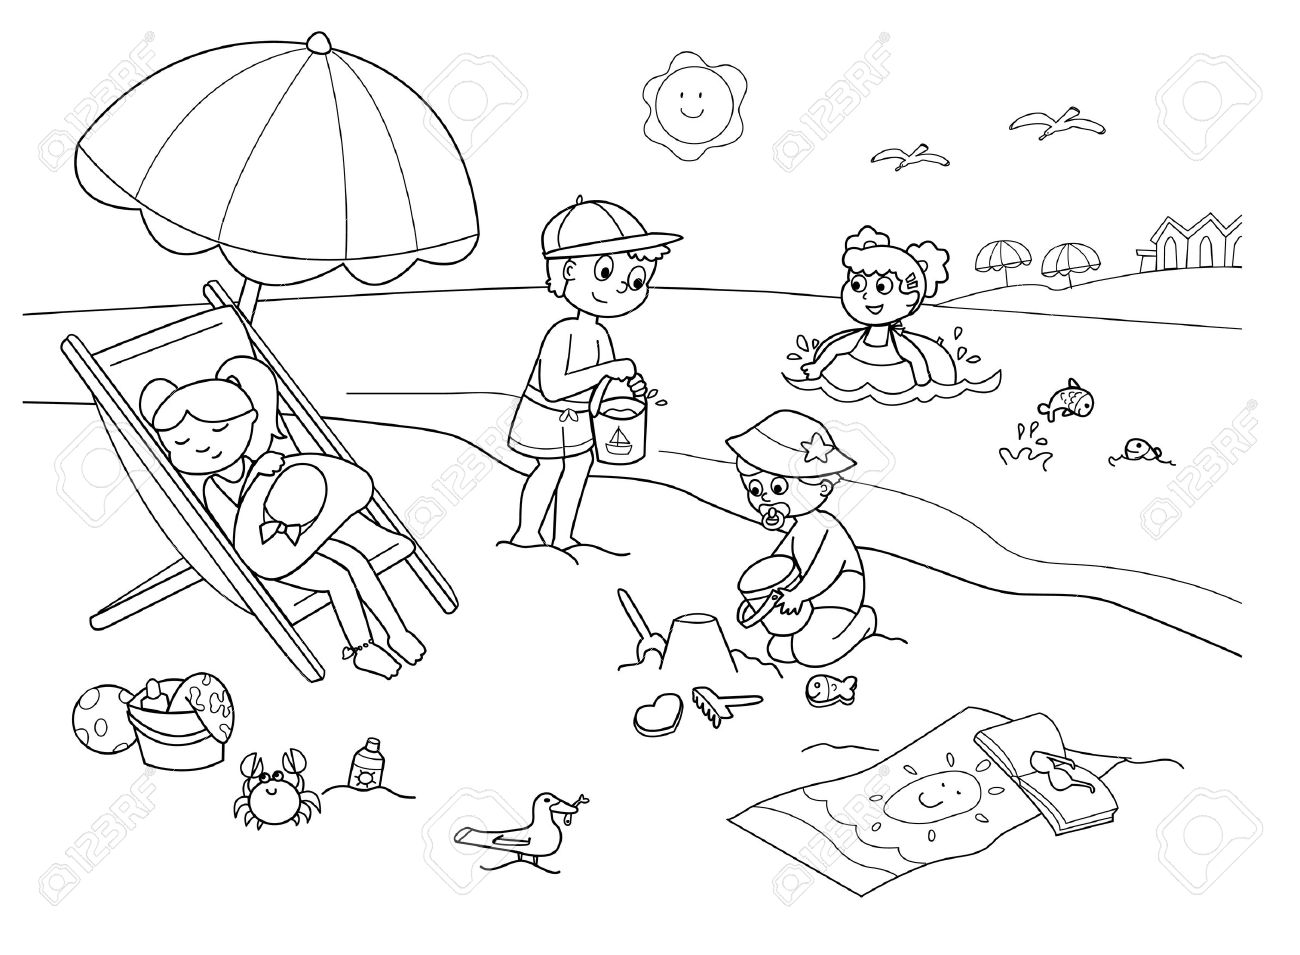 1300x955 Children Playing With The Sand At The Beach. Cartoon Illustration